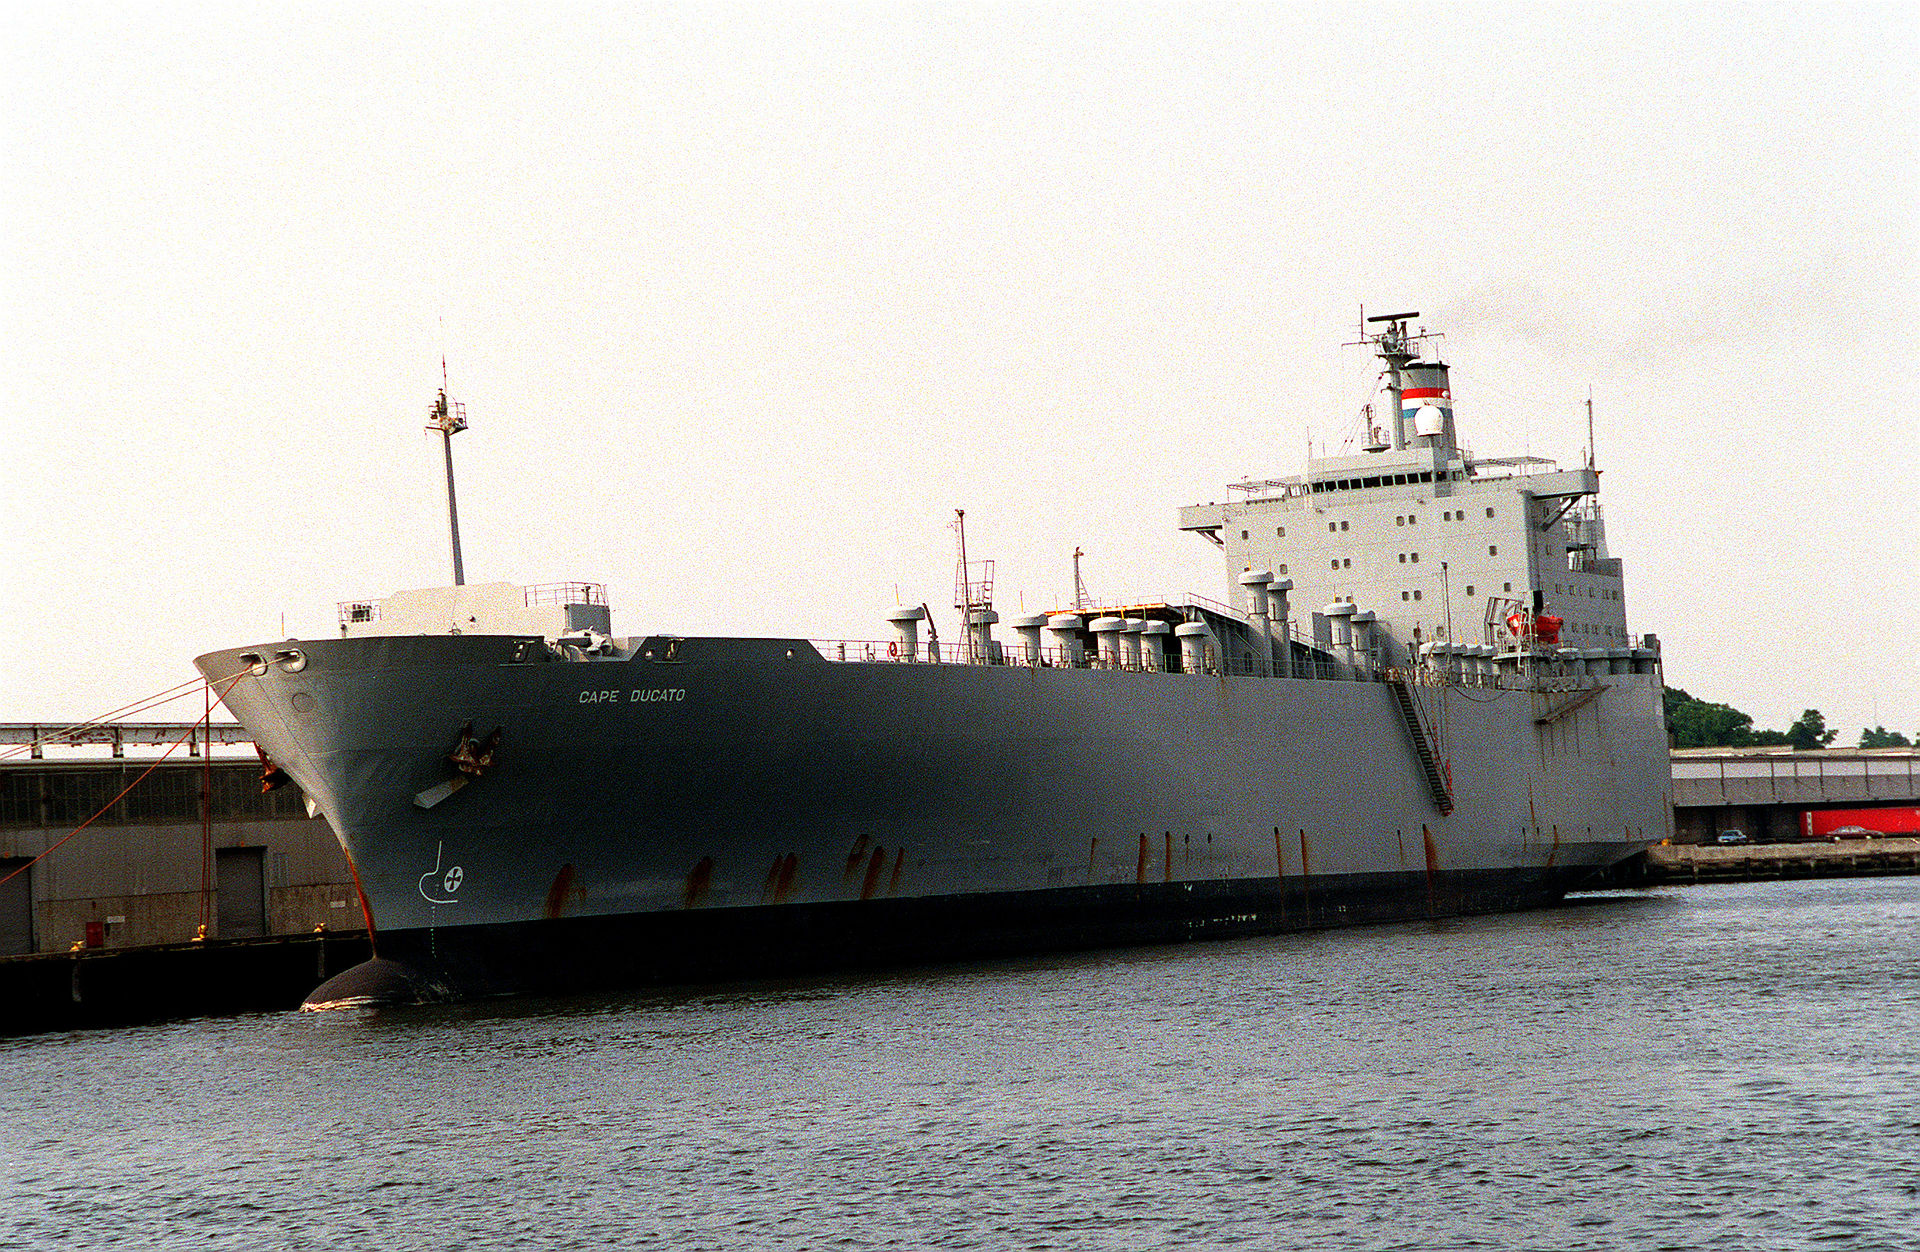 Cape Ducato Class Vehicle Cargo Ship Wikipedia